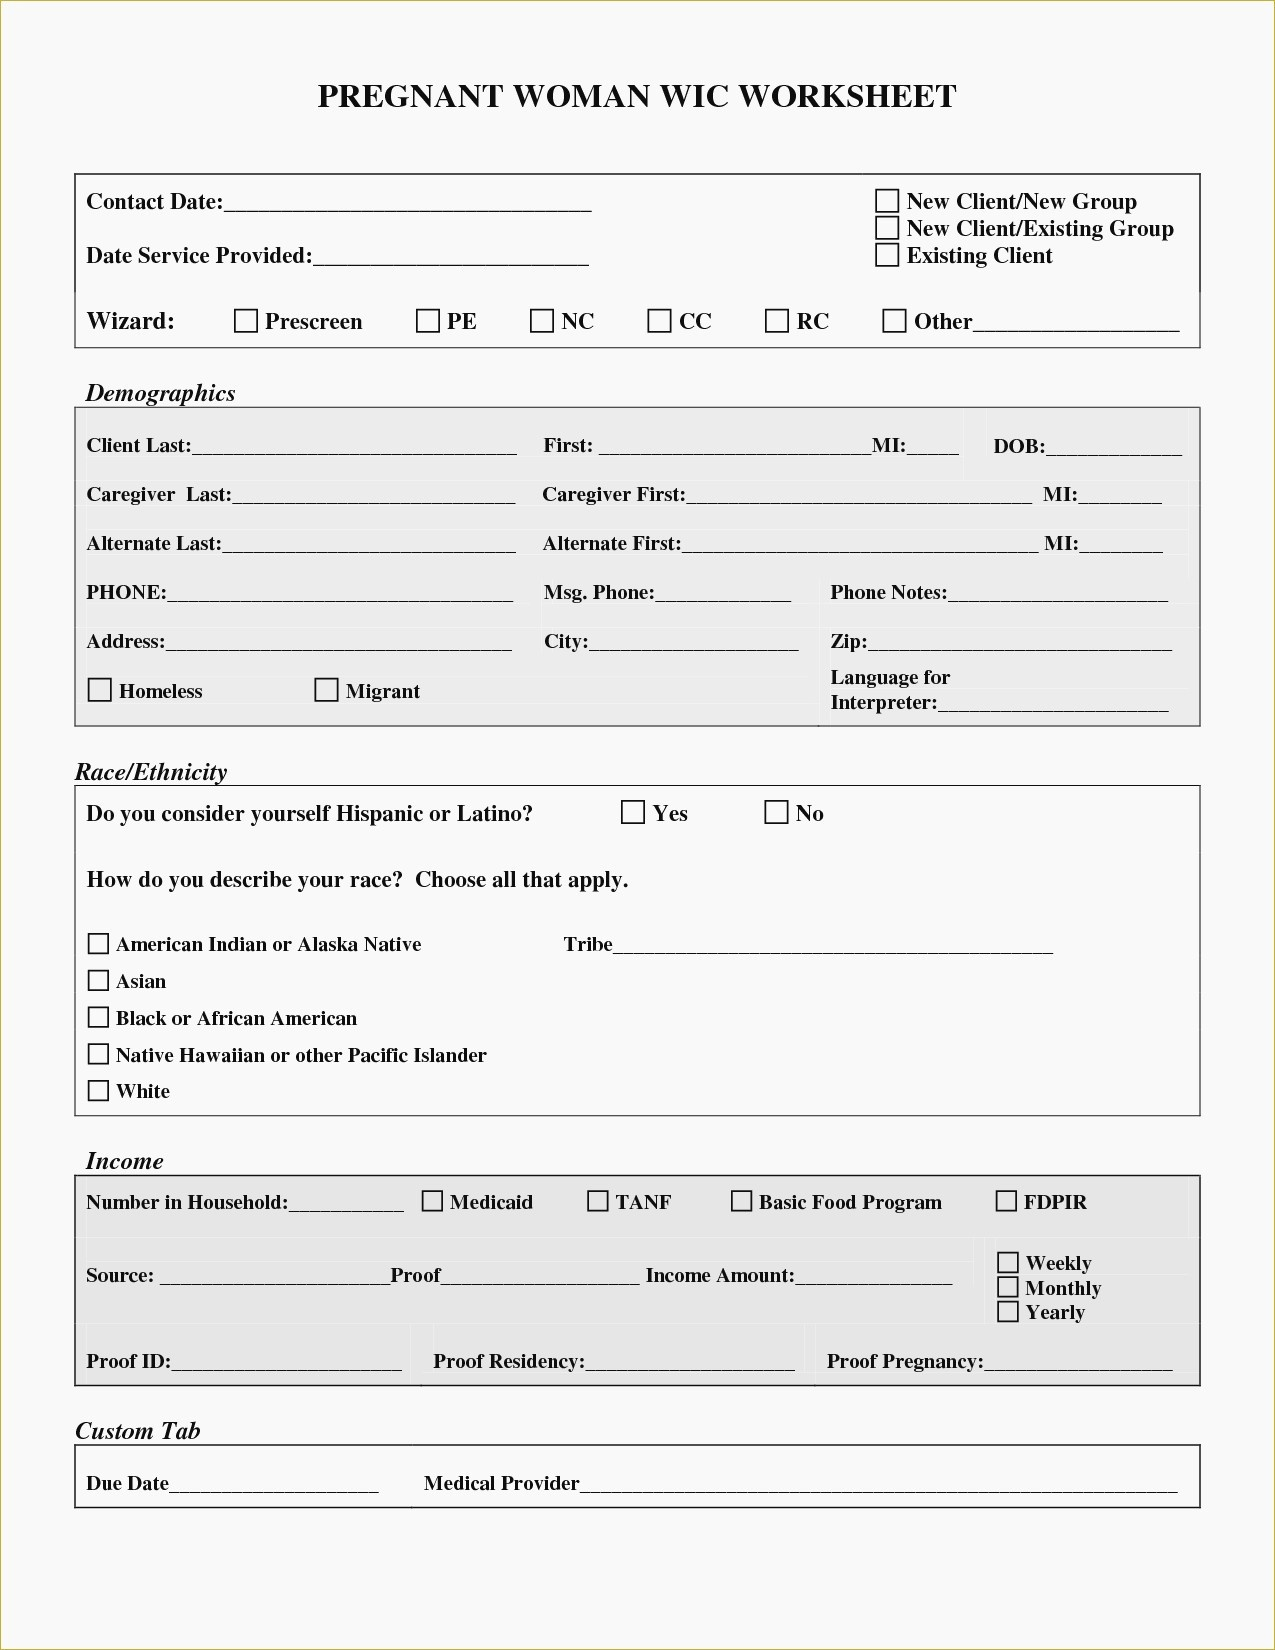 Free Printable Fake Pregnancy Papers New Pregnancy Documents - Free Printable Documents